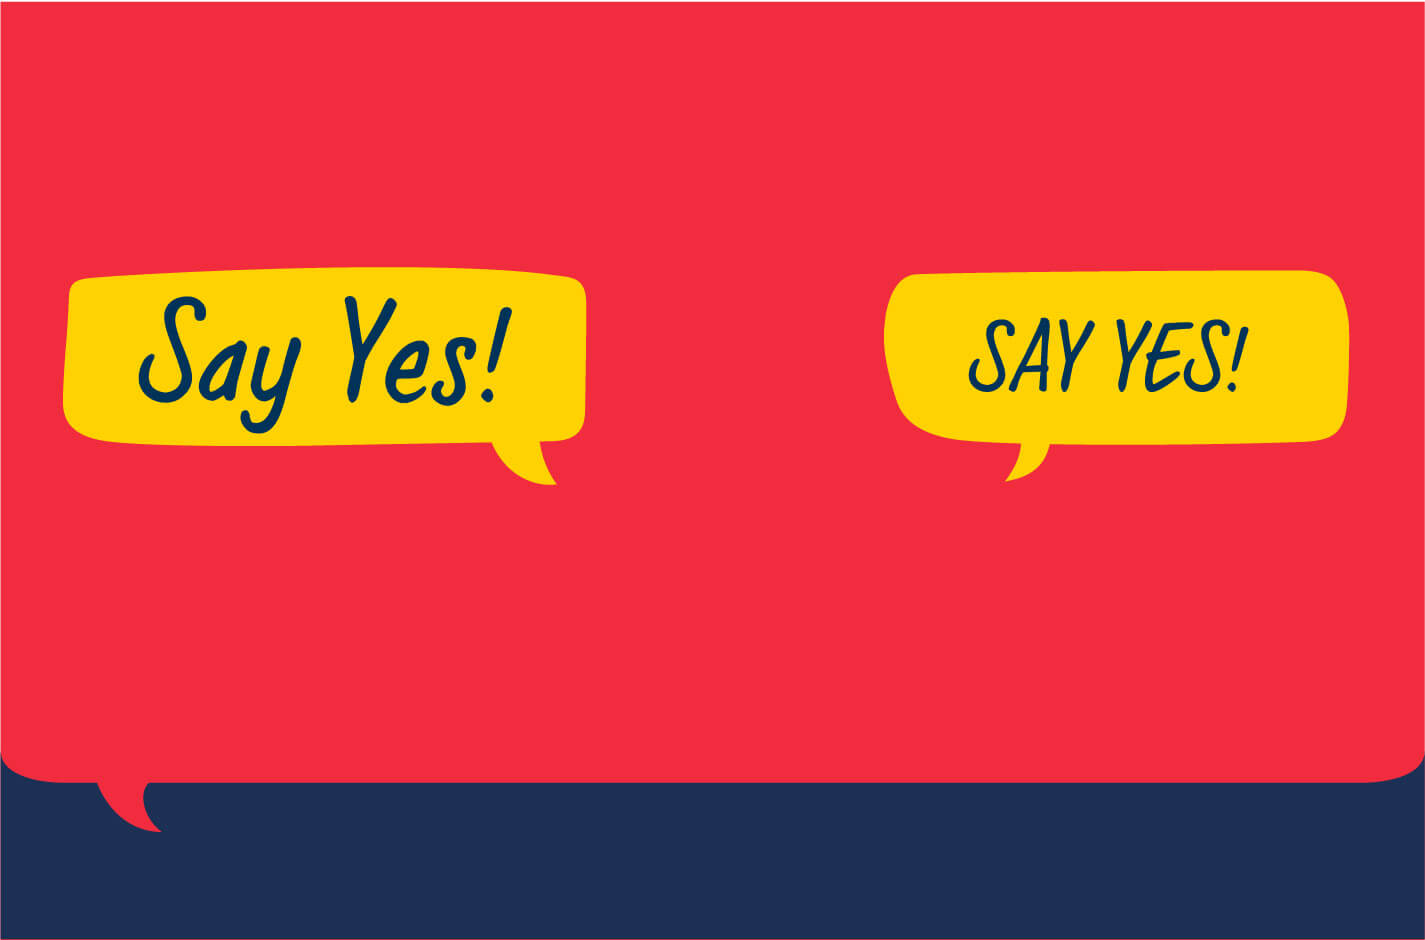 Say Yes to the most supportive learning experience with Wall Street English